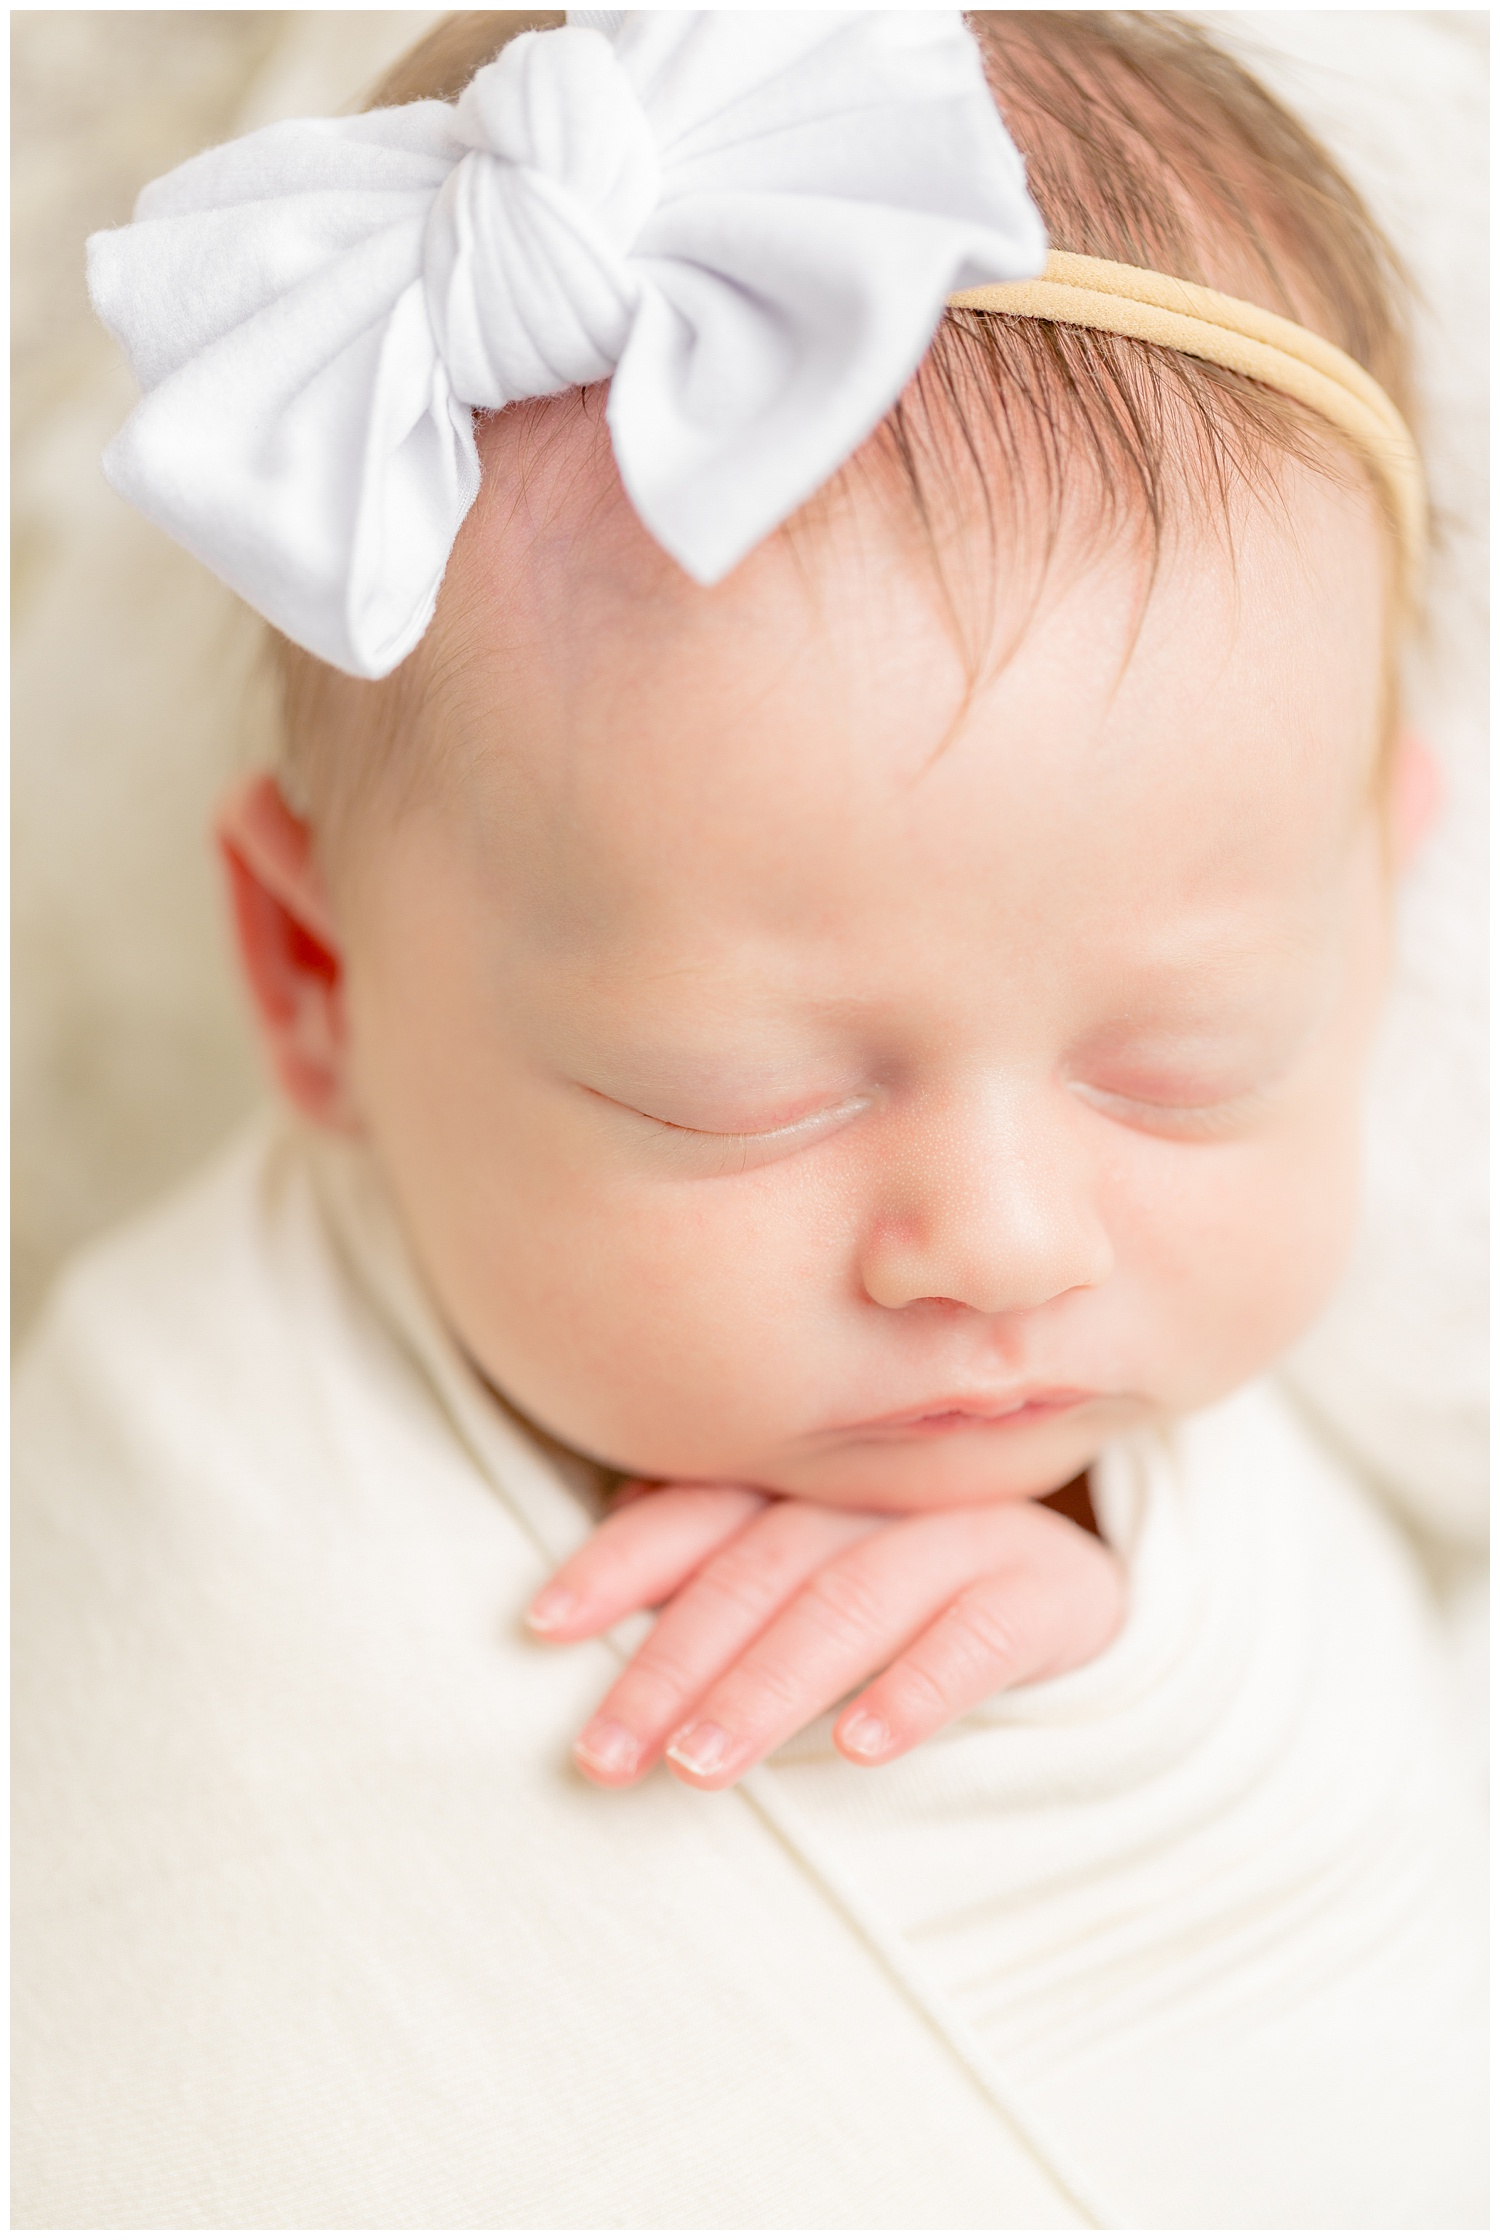 Newborn baby girl wrapped in ivory stretch fabric resting her chin gently on her hand while wearing a white bow headband.   CB Studio